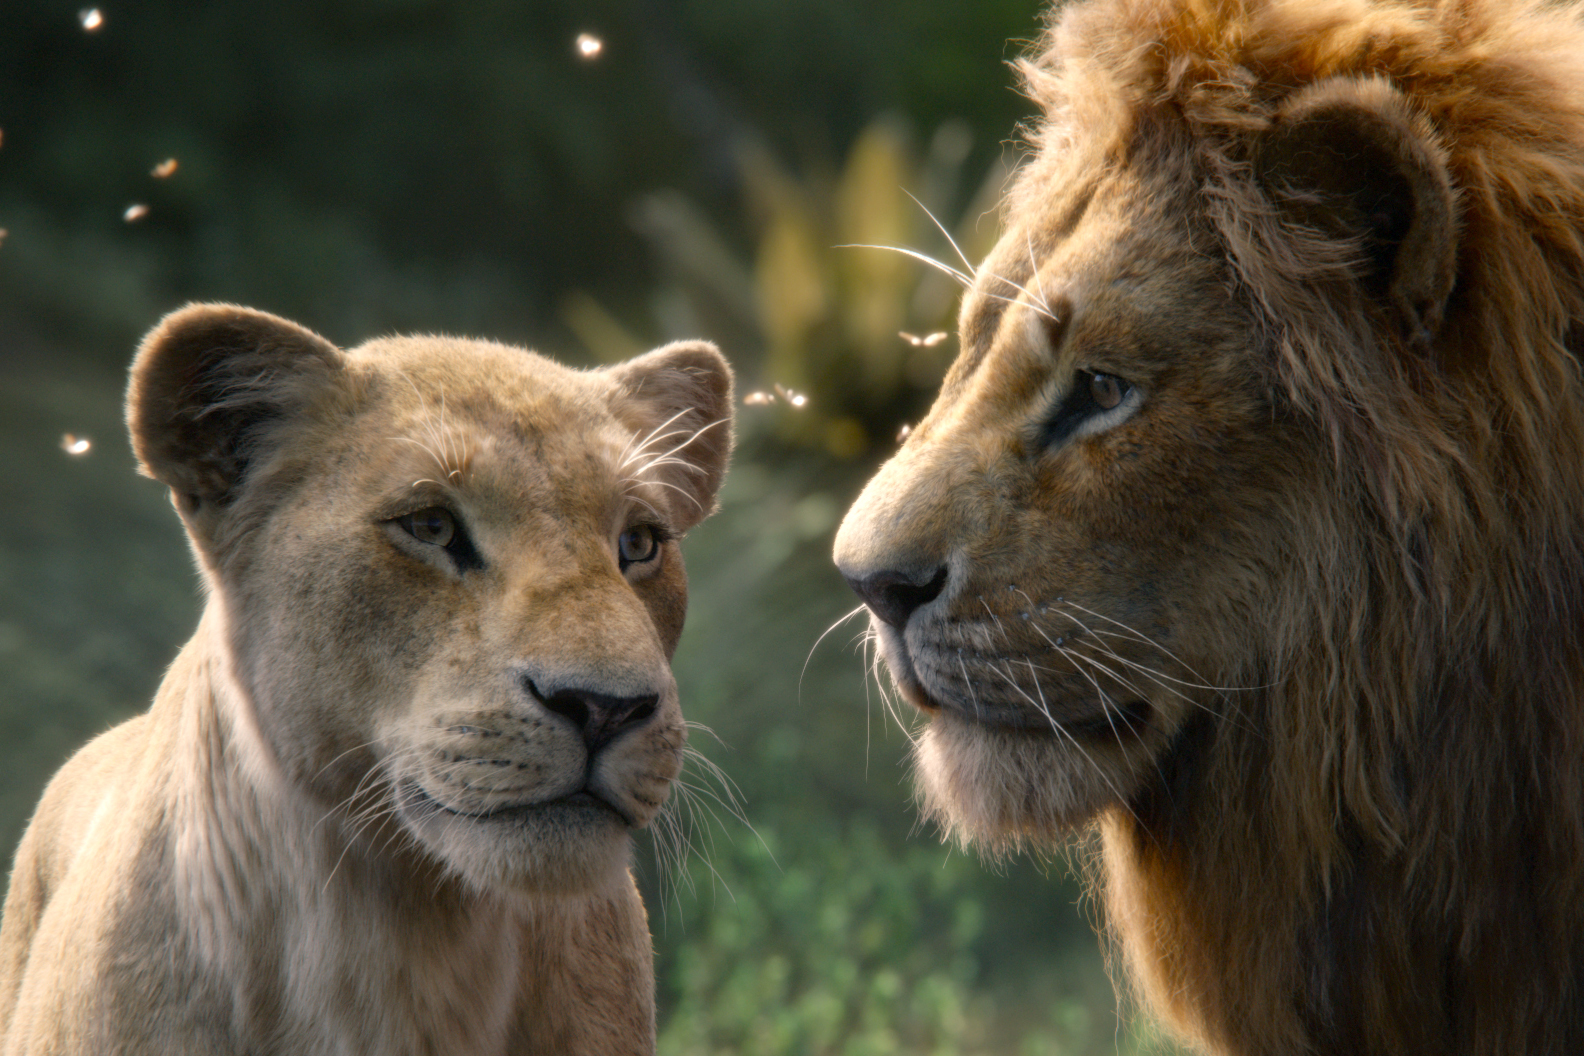 "The characters Nala (voiced by Beyonce Knowles-Carter) and Simba (voiced by Donald Glover) appear in the movie ""The Lion King"". Photo: Disney/CNS."